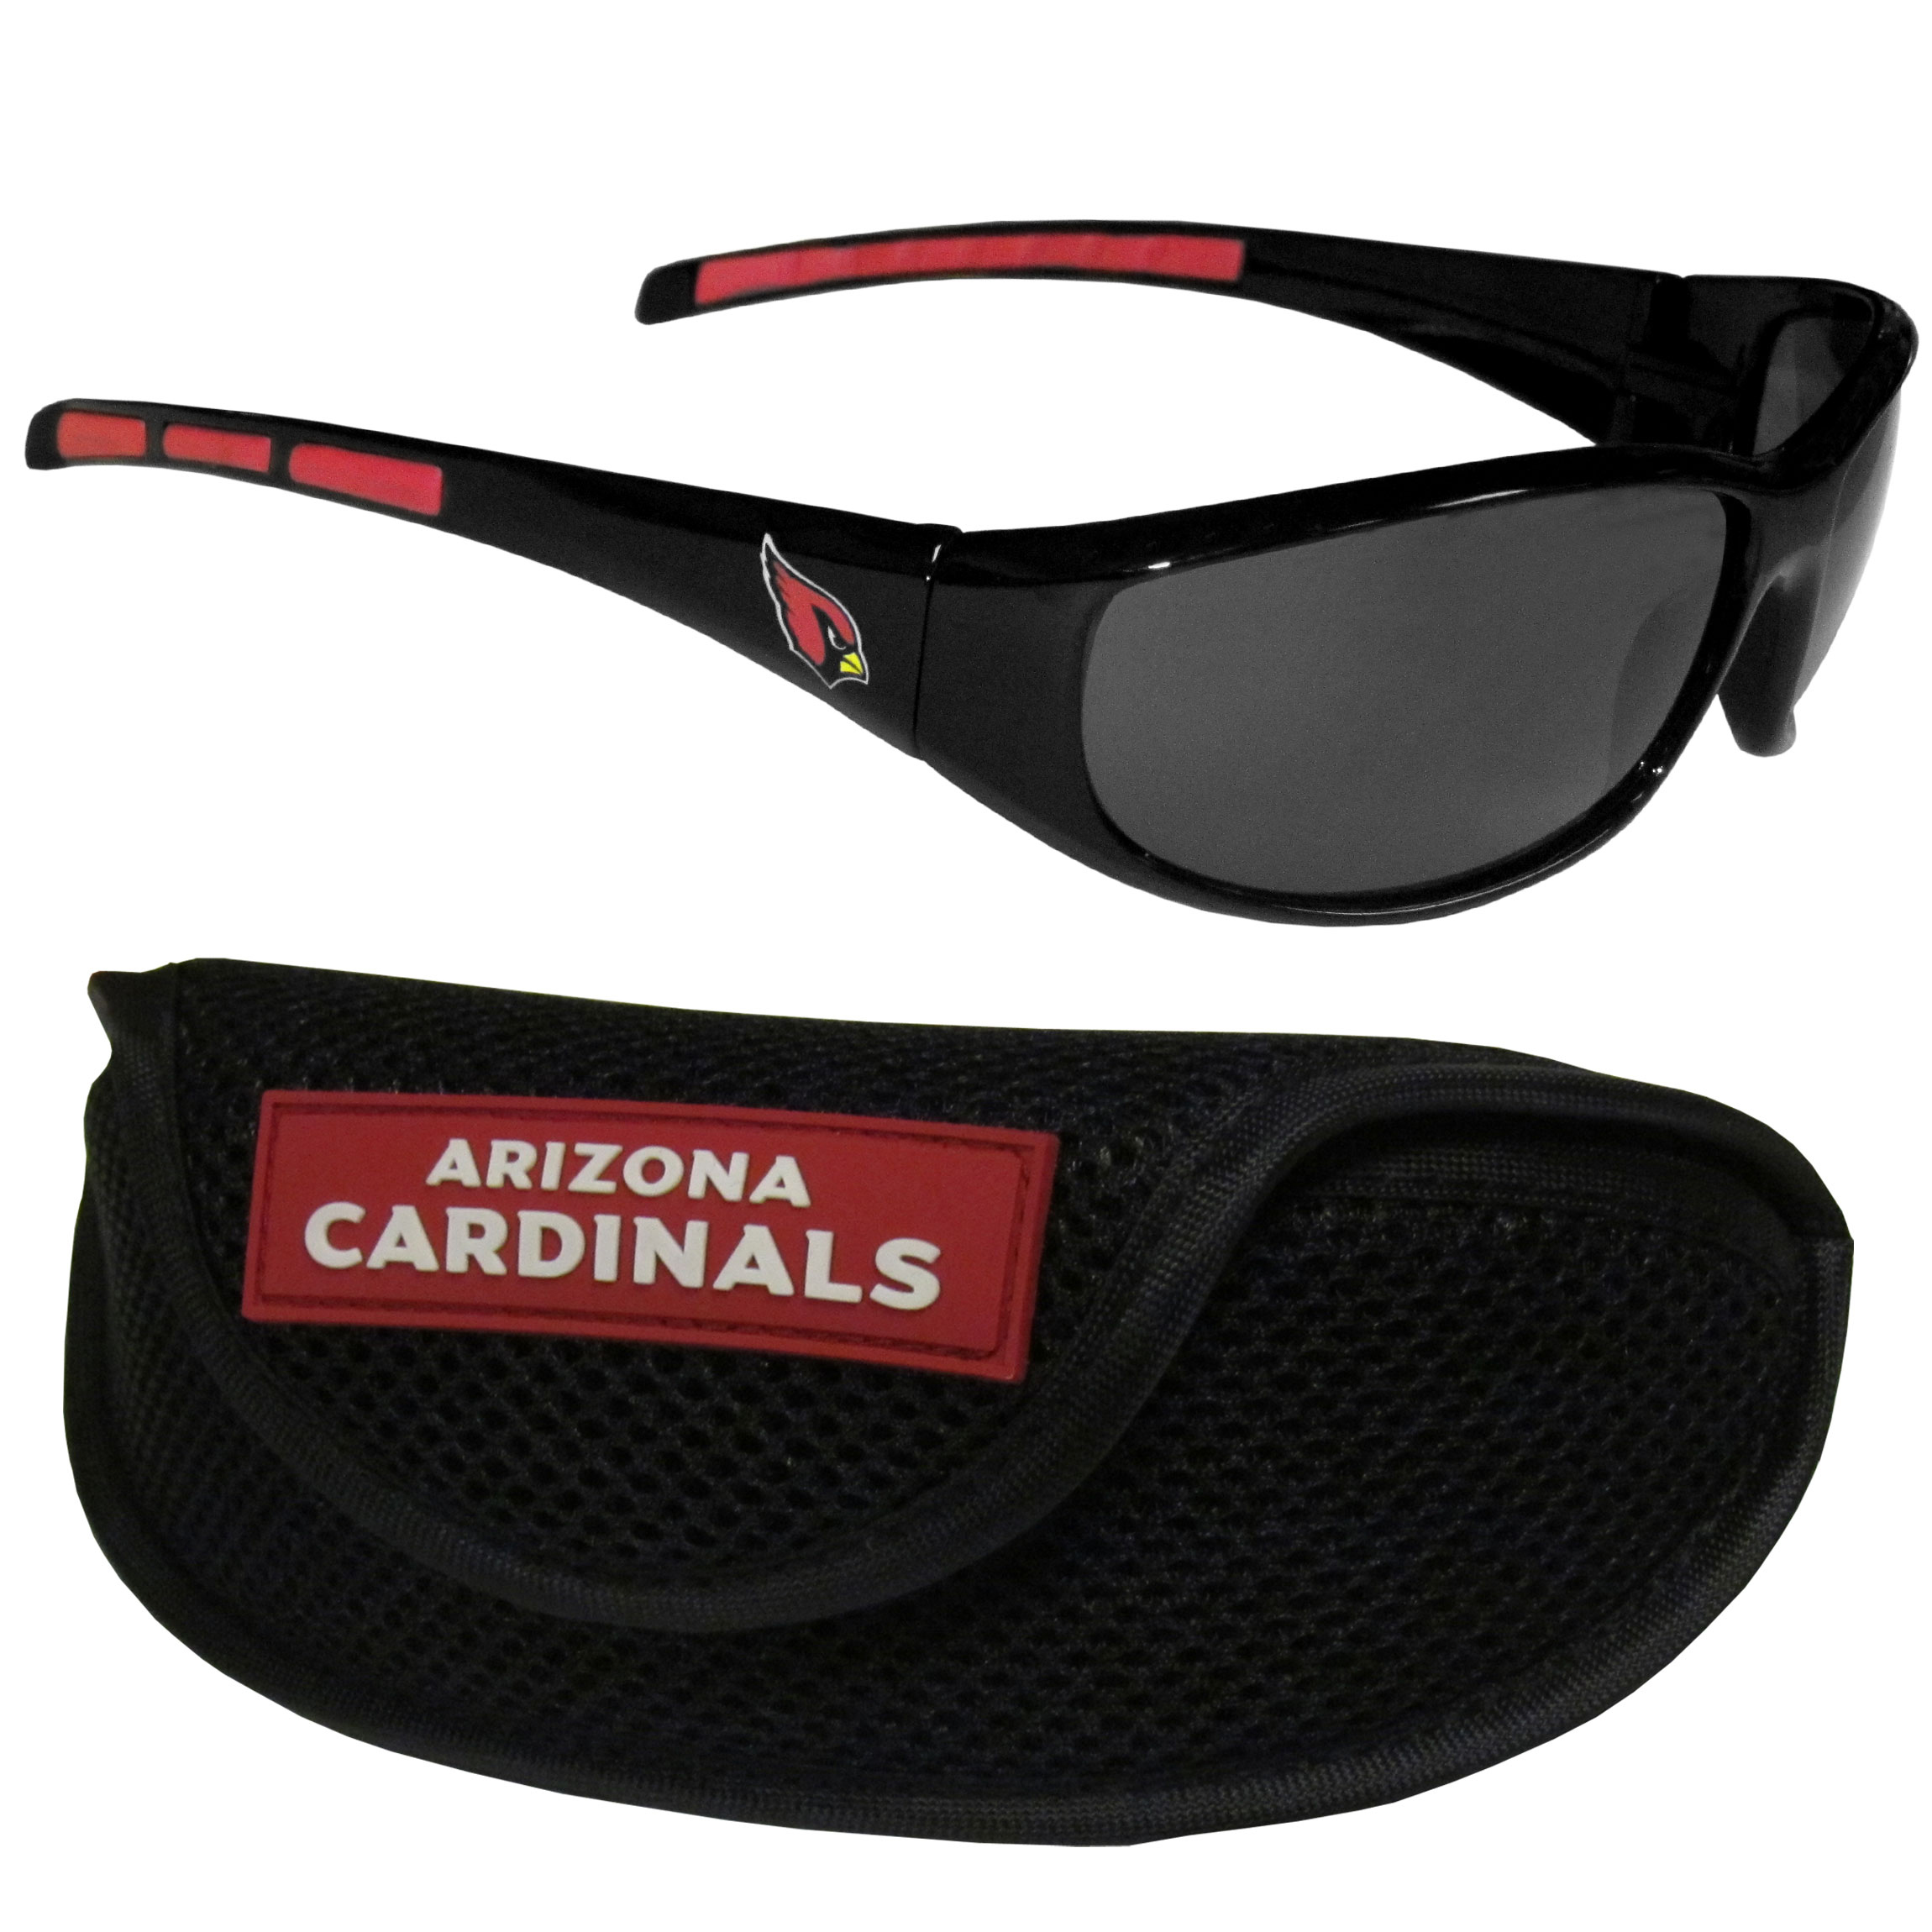 Arizona Cardinals Wrap Sunglass and Case Set - This great set includes a high quality pair of Arizona Cardinals wrap sunglasses and sport carrying case.